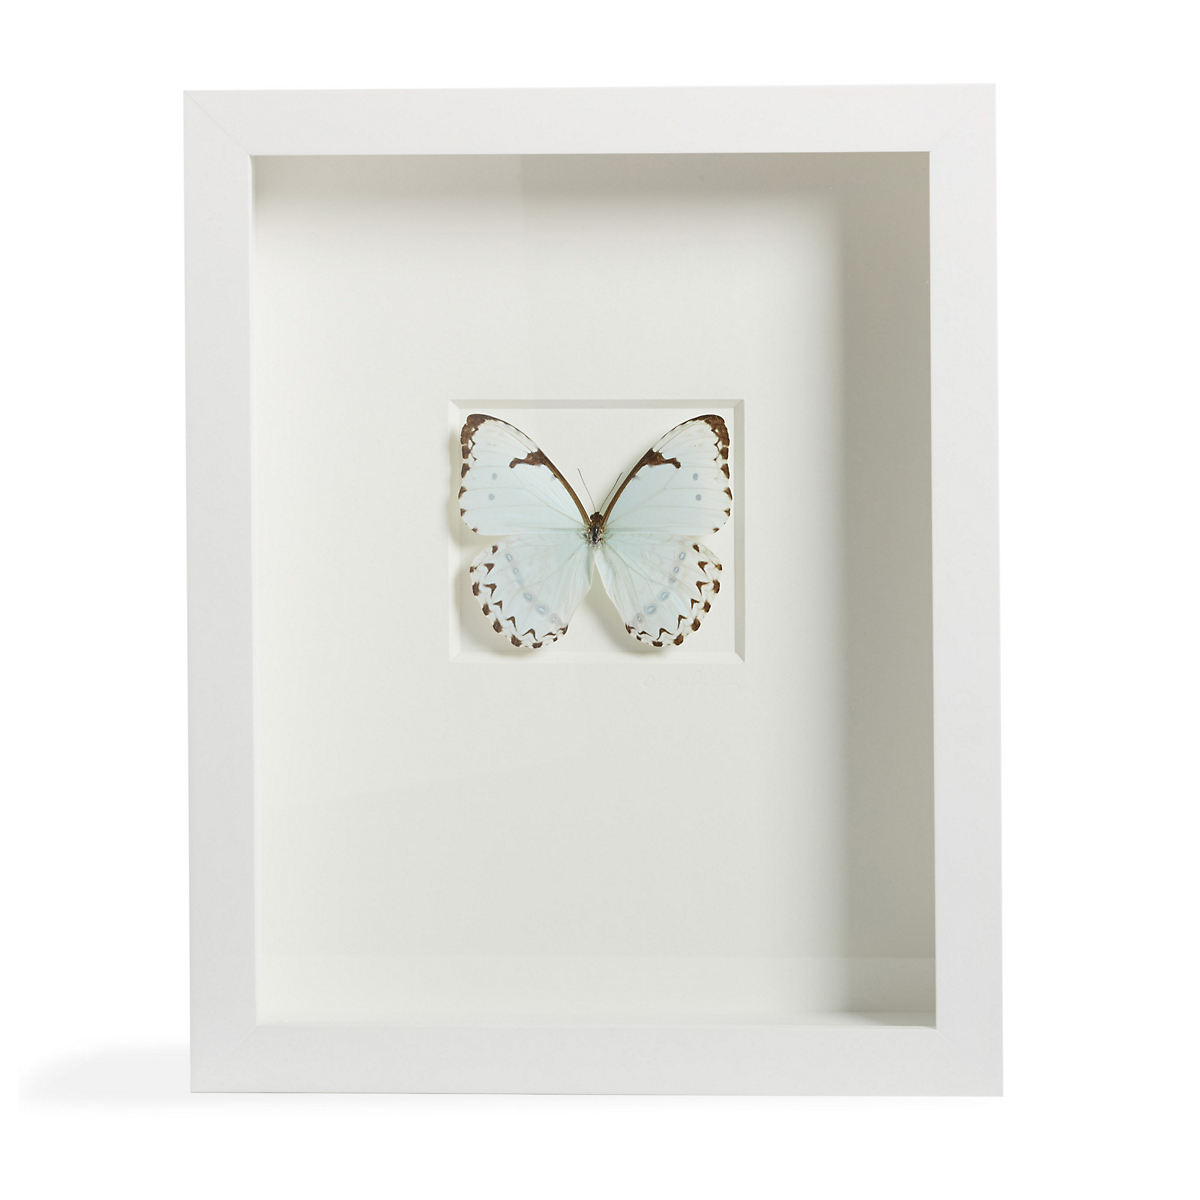 Christopher Marley White Morpho Catenarius